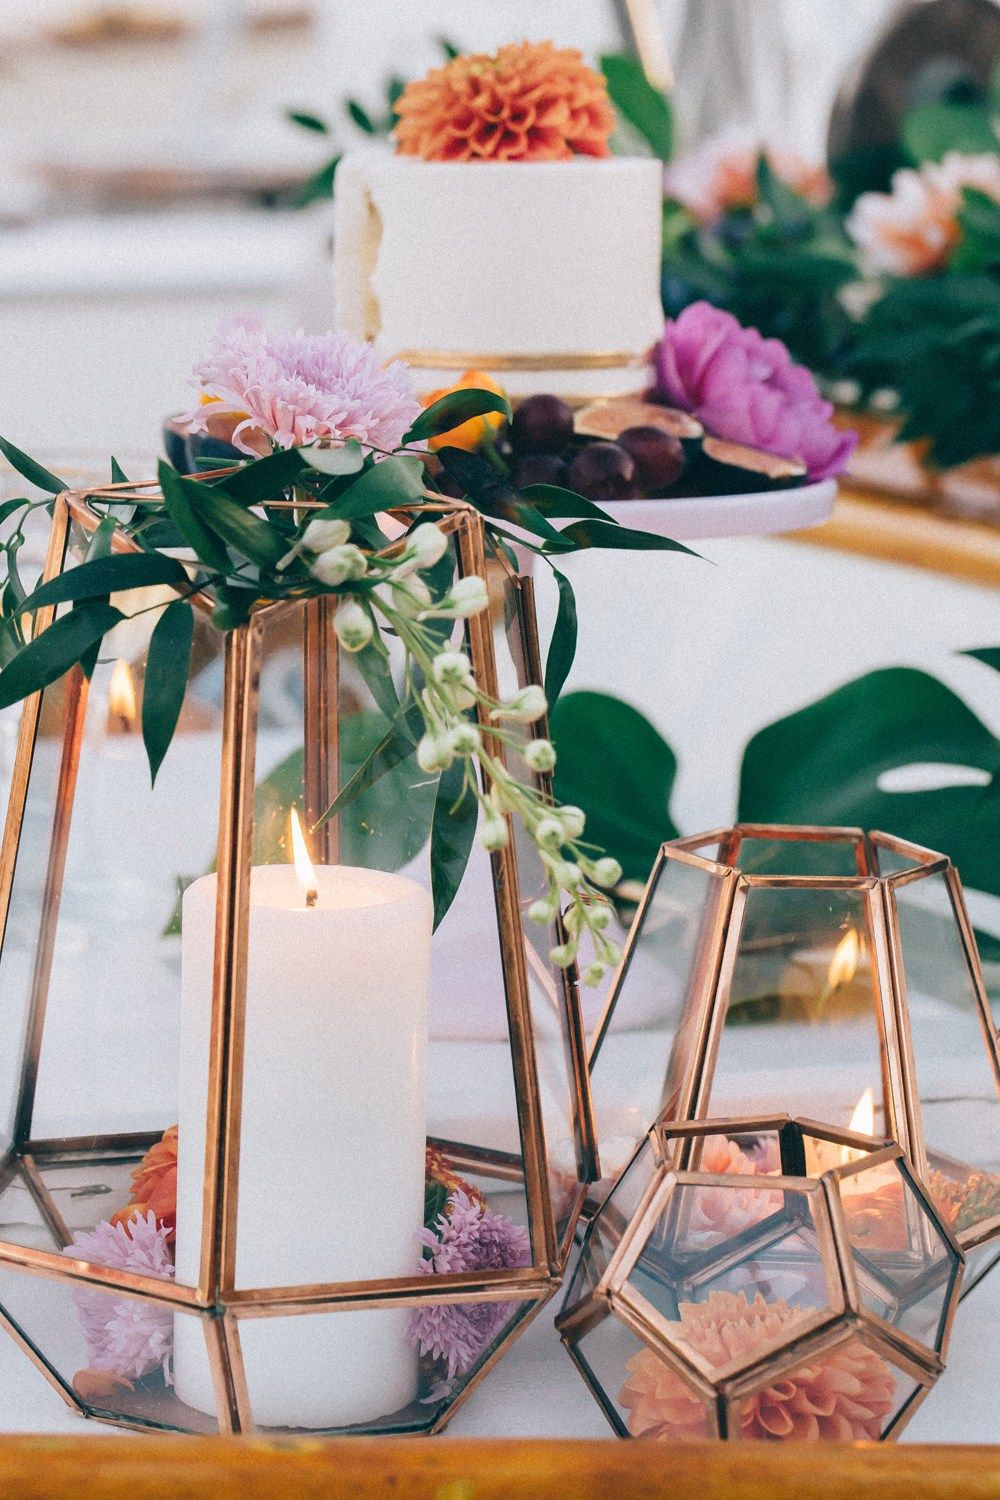 Wedding decoration ideas at home   Geometric Wedding Table Decor Ideas  Home sweet home